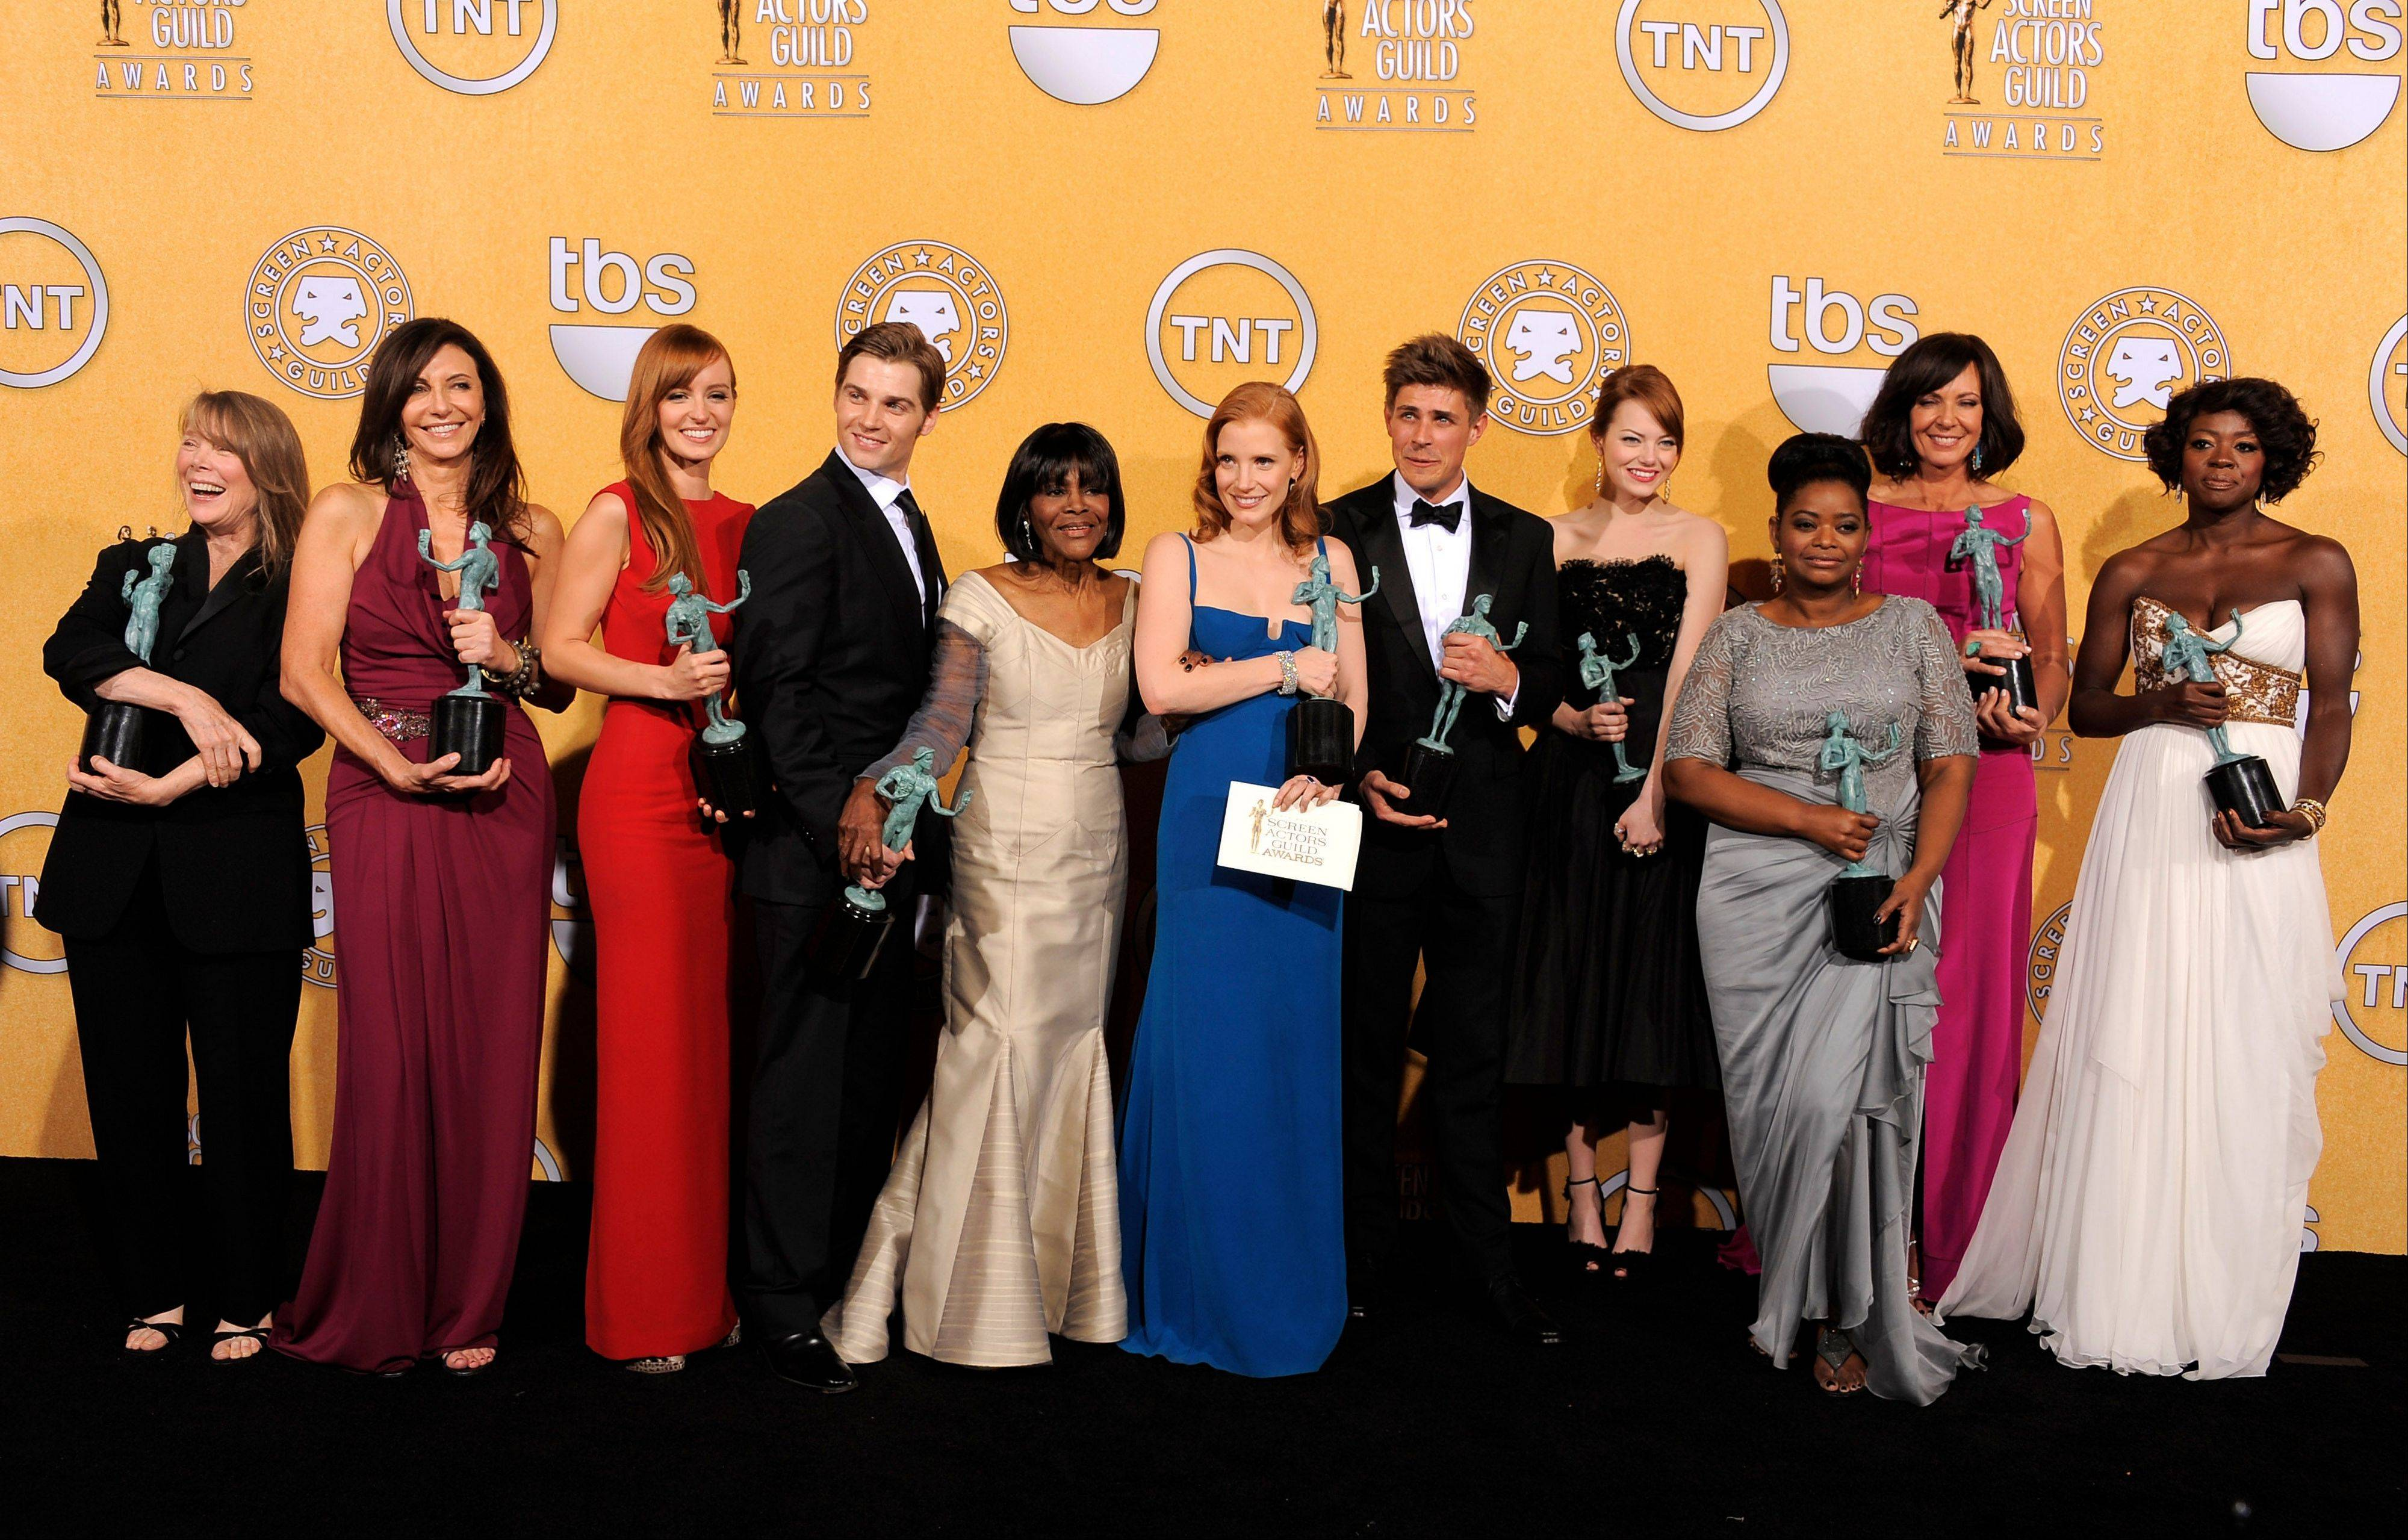 "ASSOCIATED PRESSCastmembers of ""The Help"" pose backstage with their awards for outstanding performance by a cast in a motion picture. From left, Sissy Spacek, Mary Steenburgen, Ahna O'Reilly, Mike Vogel, Cicely Tyson, Jessica Chastain, Chris Lowell, Emma Stone, Octavia Spencer, Allison Janney and Viola Davis."